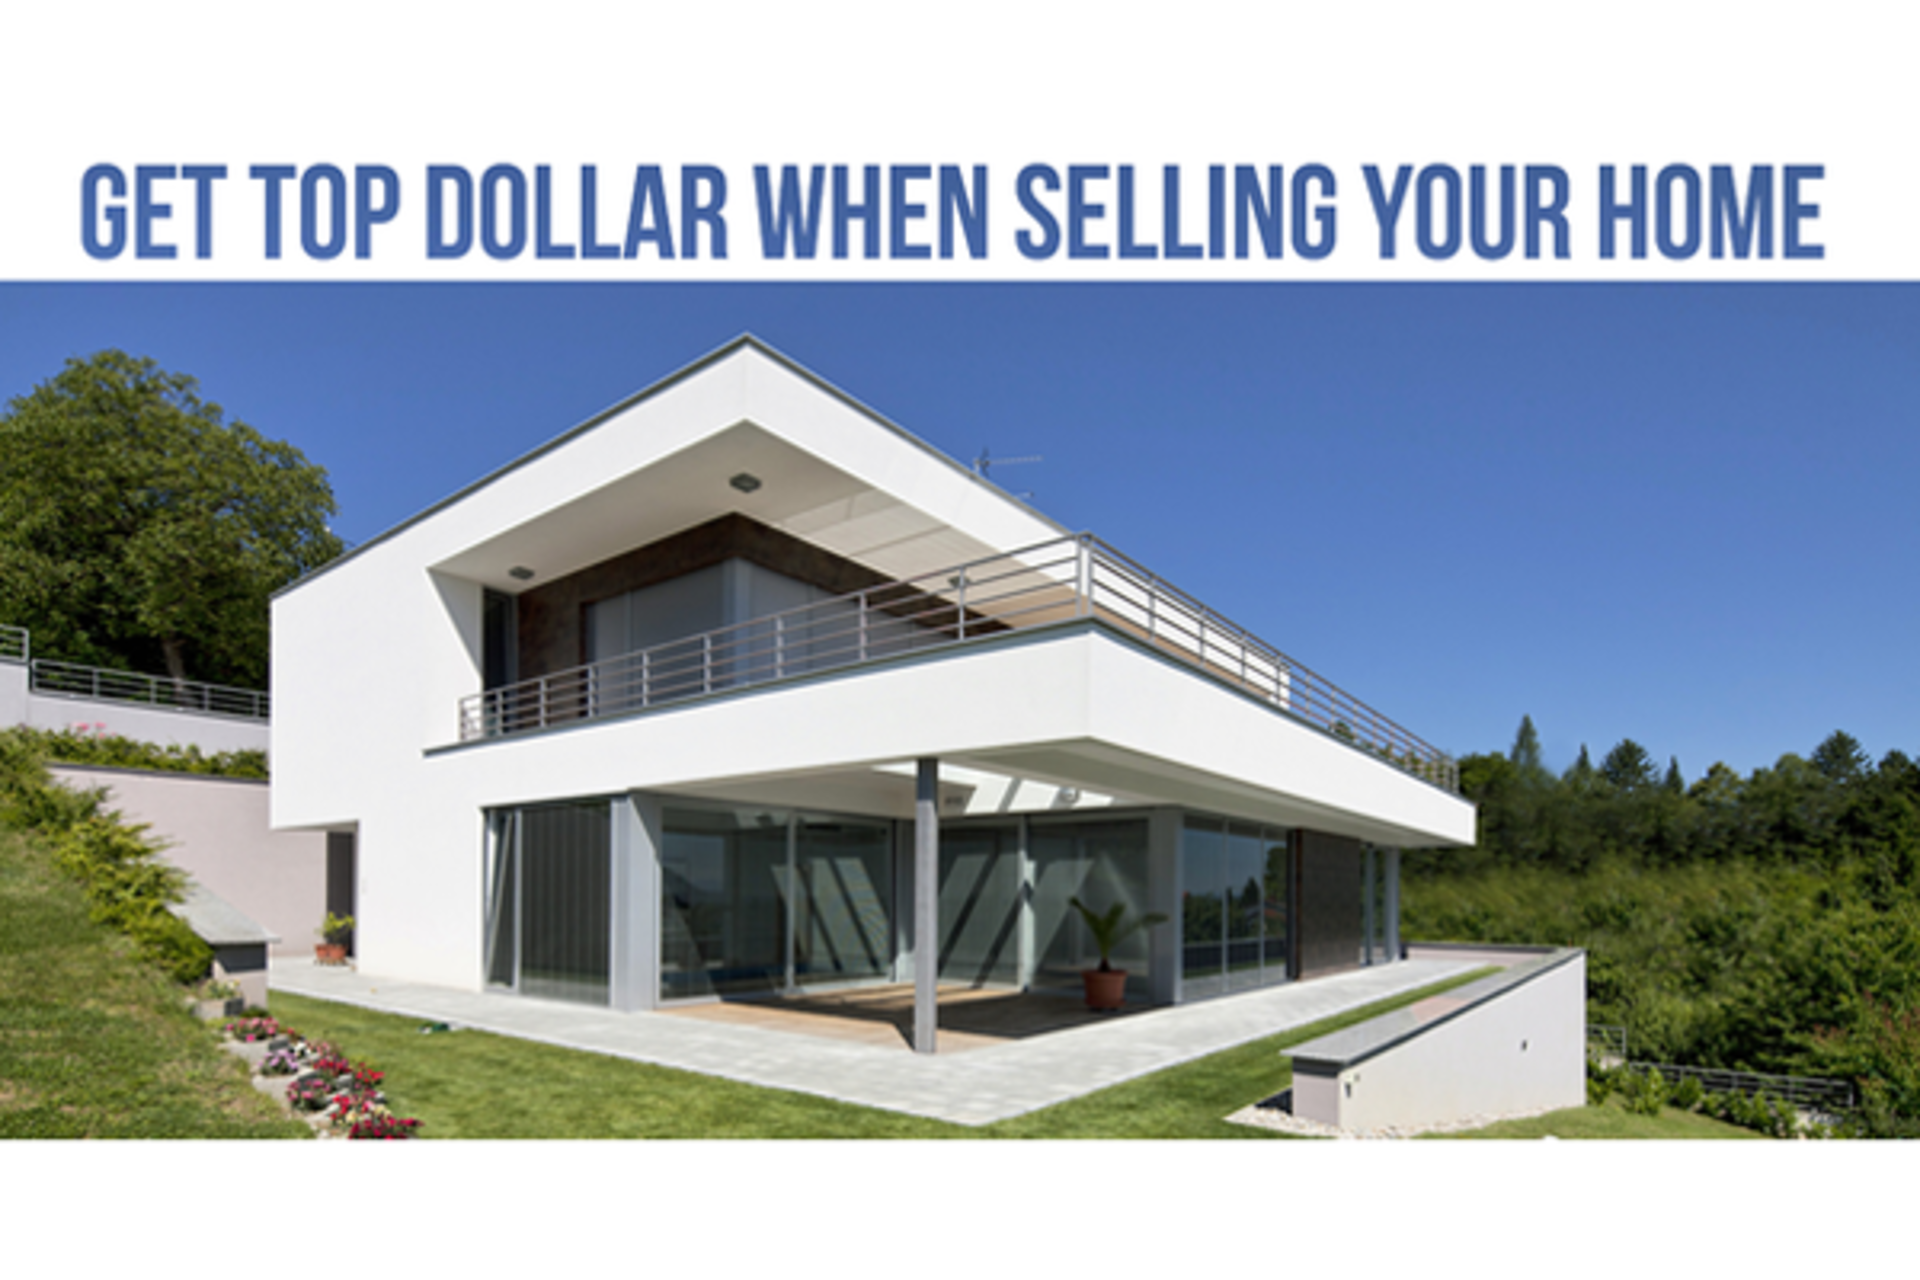 Get Top Dollar When Selling